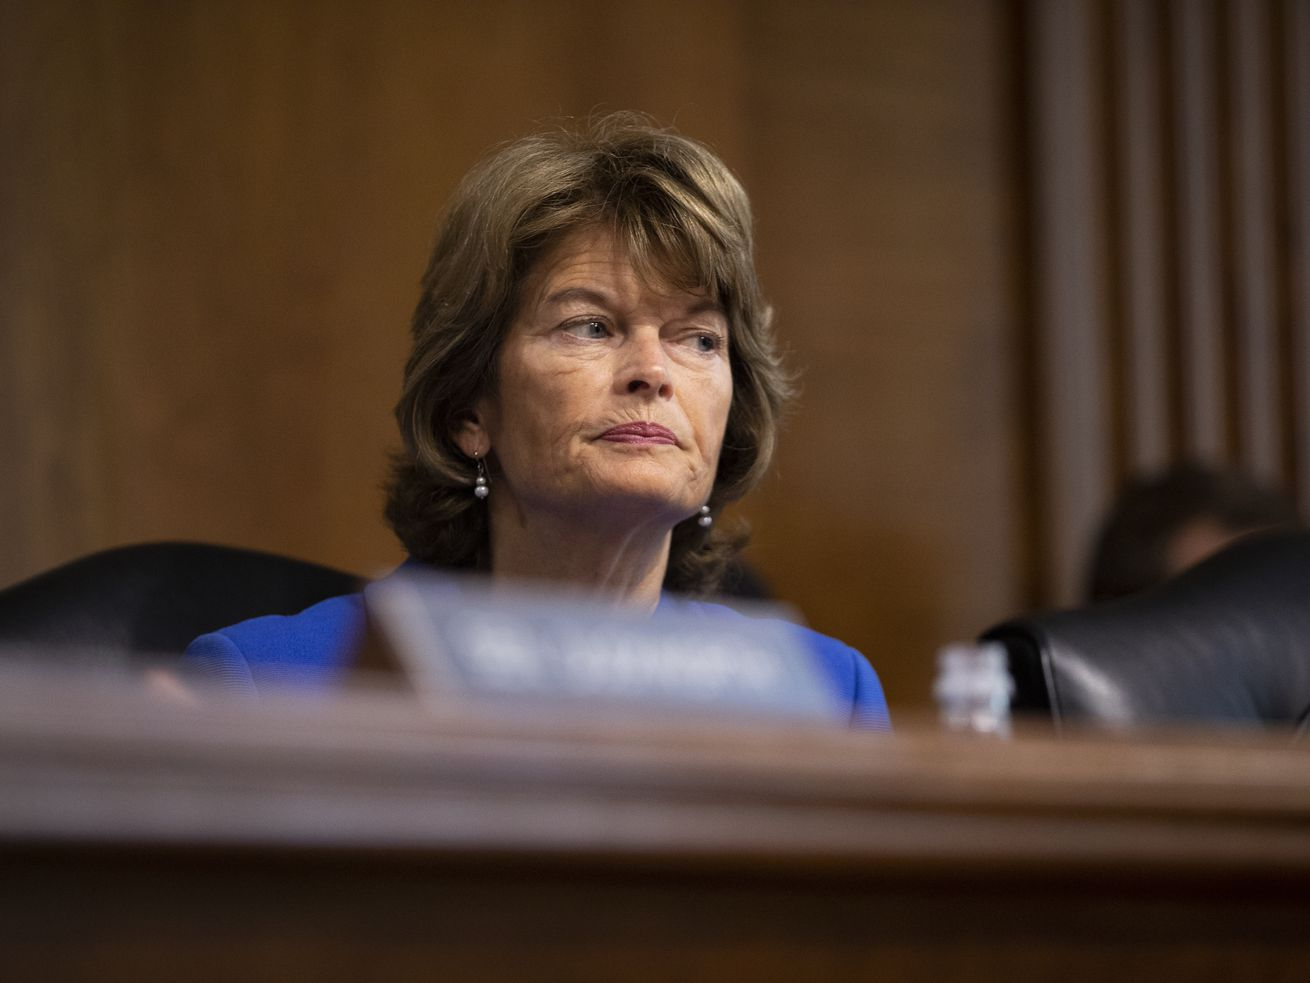 Sen. Lisa Murkowski (R-AK) is among four Republican senators who seem the most likely to vote against Brett Kavanaugh.